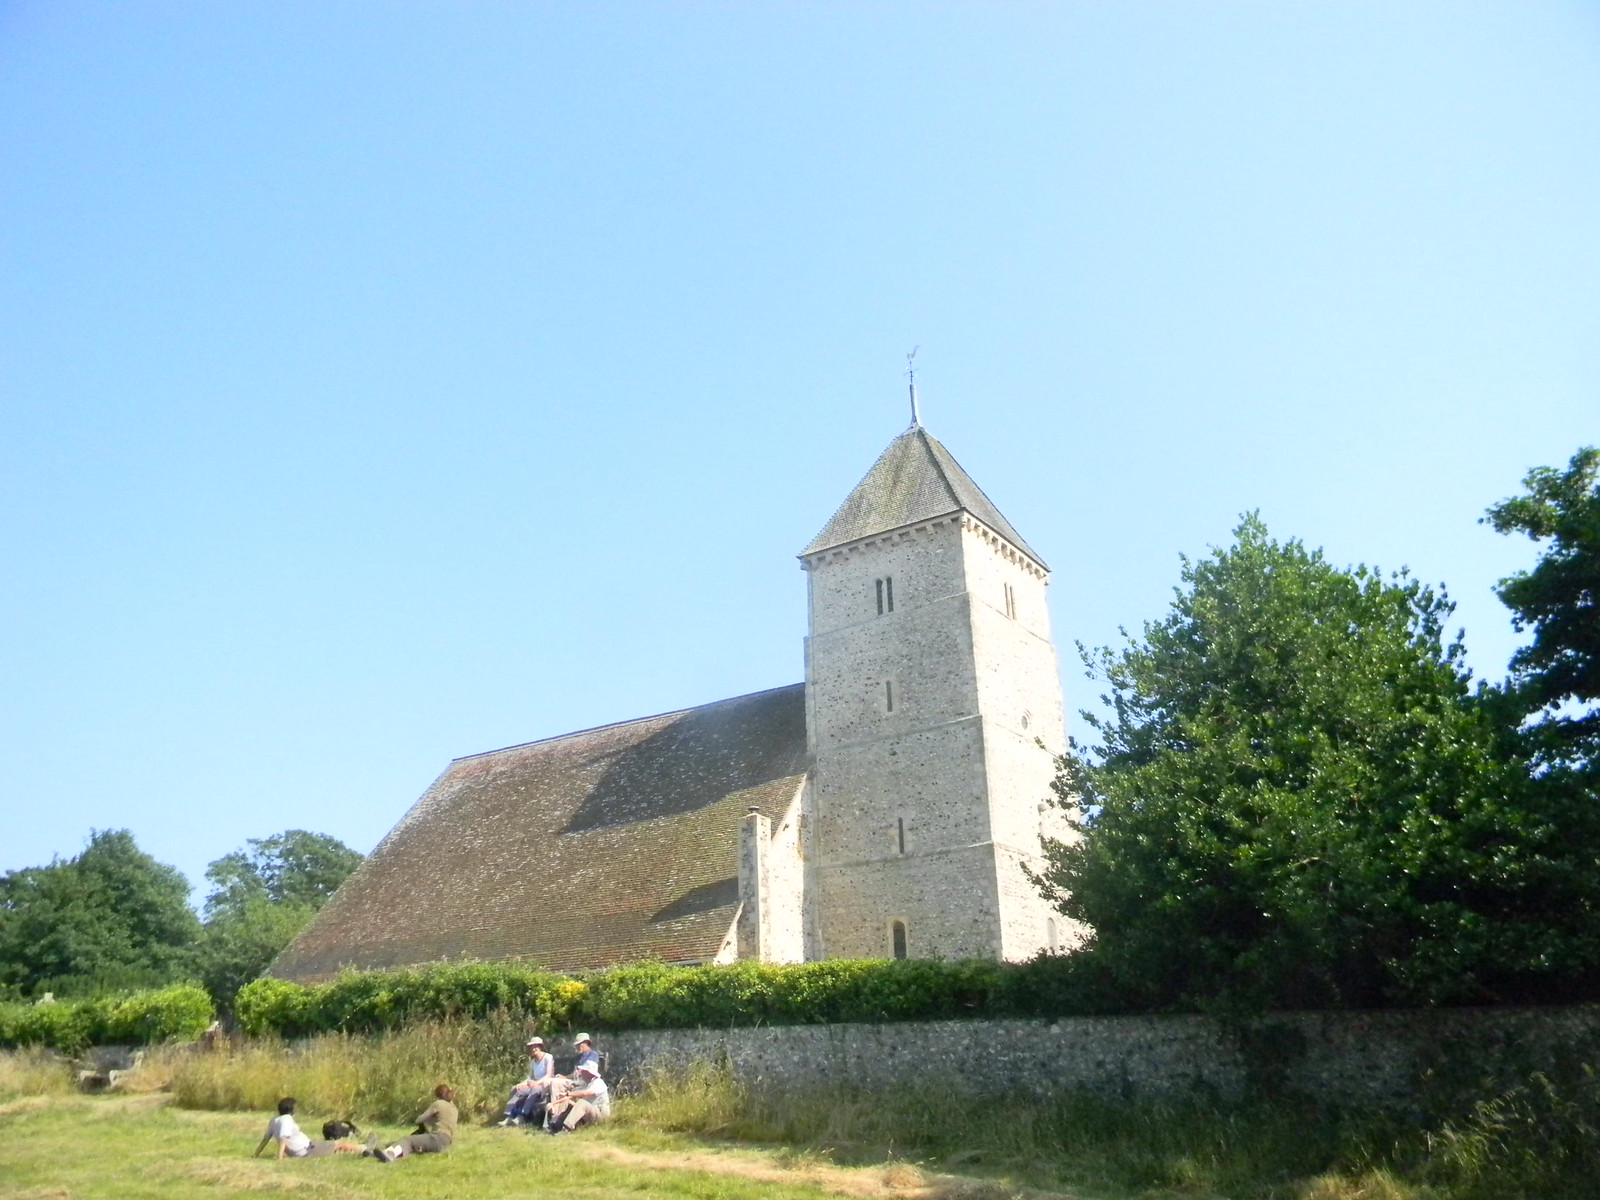 Bishopstone church. The others rest after catching up with me. Lewes to Seaford (composite route)